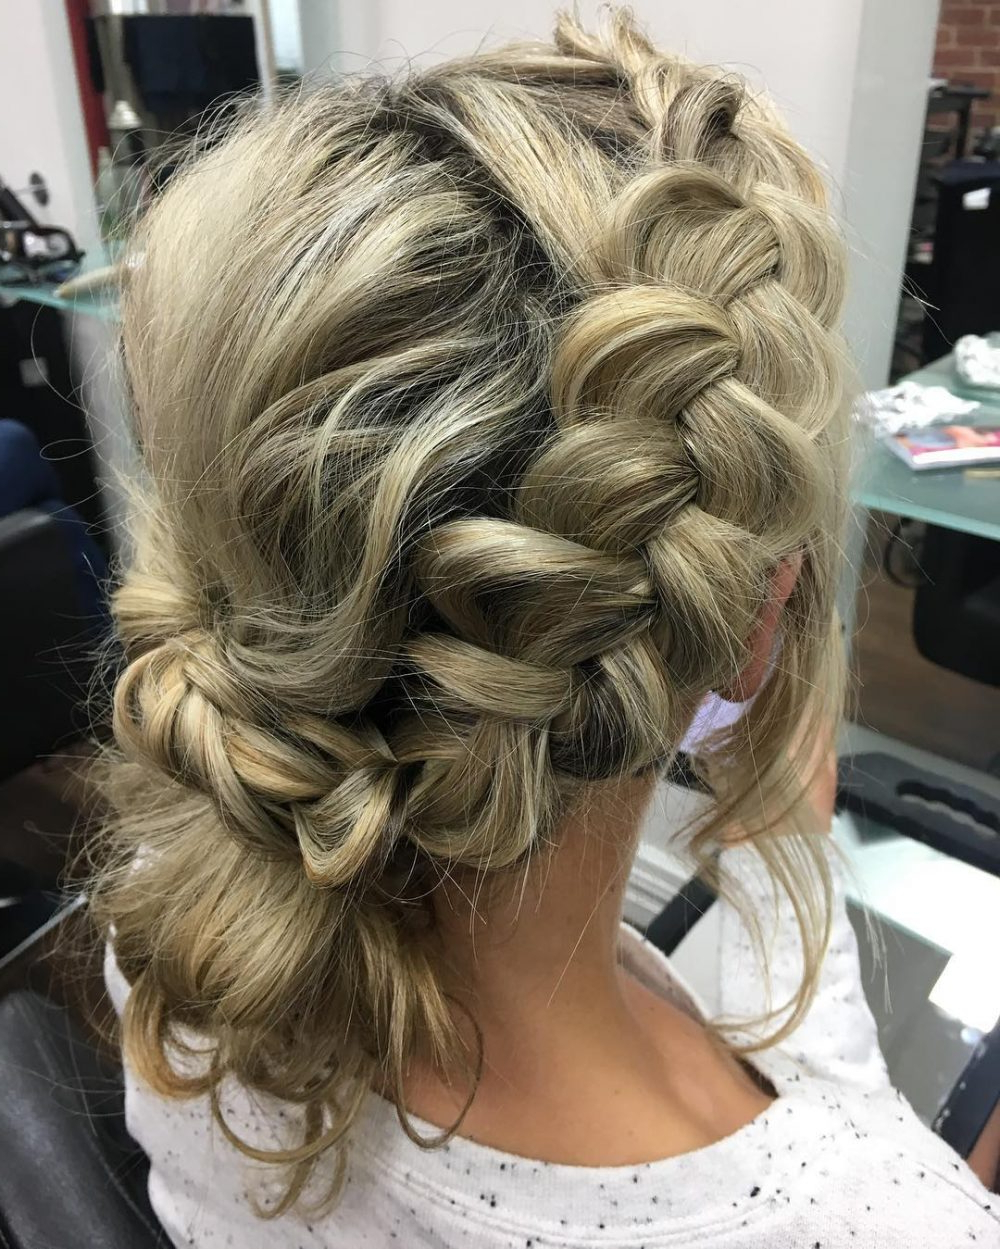 Favorite Vintage Inspired Braided Updo Hairstyles For Top 19 Bohemian Hairstyles Trending In (View 8 of 20)